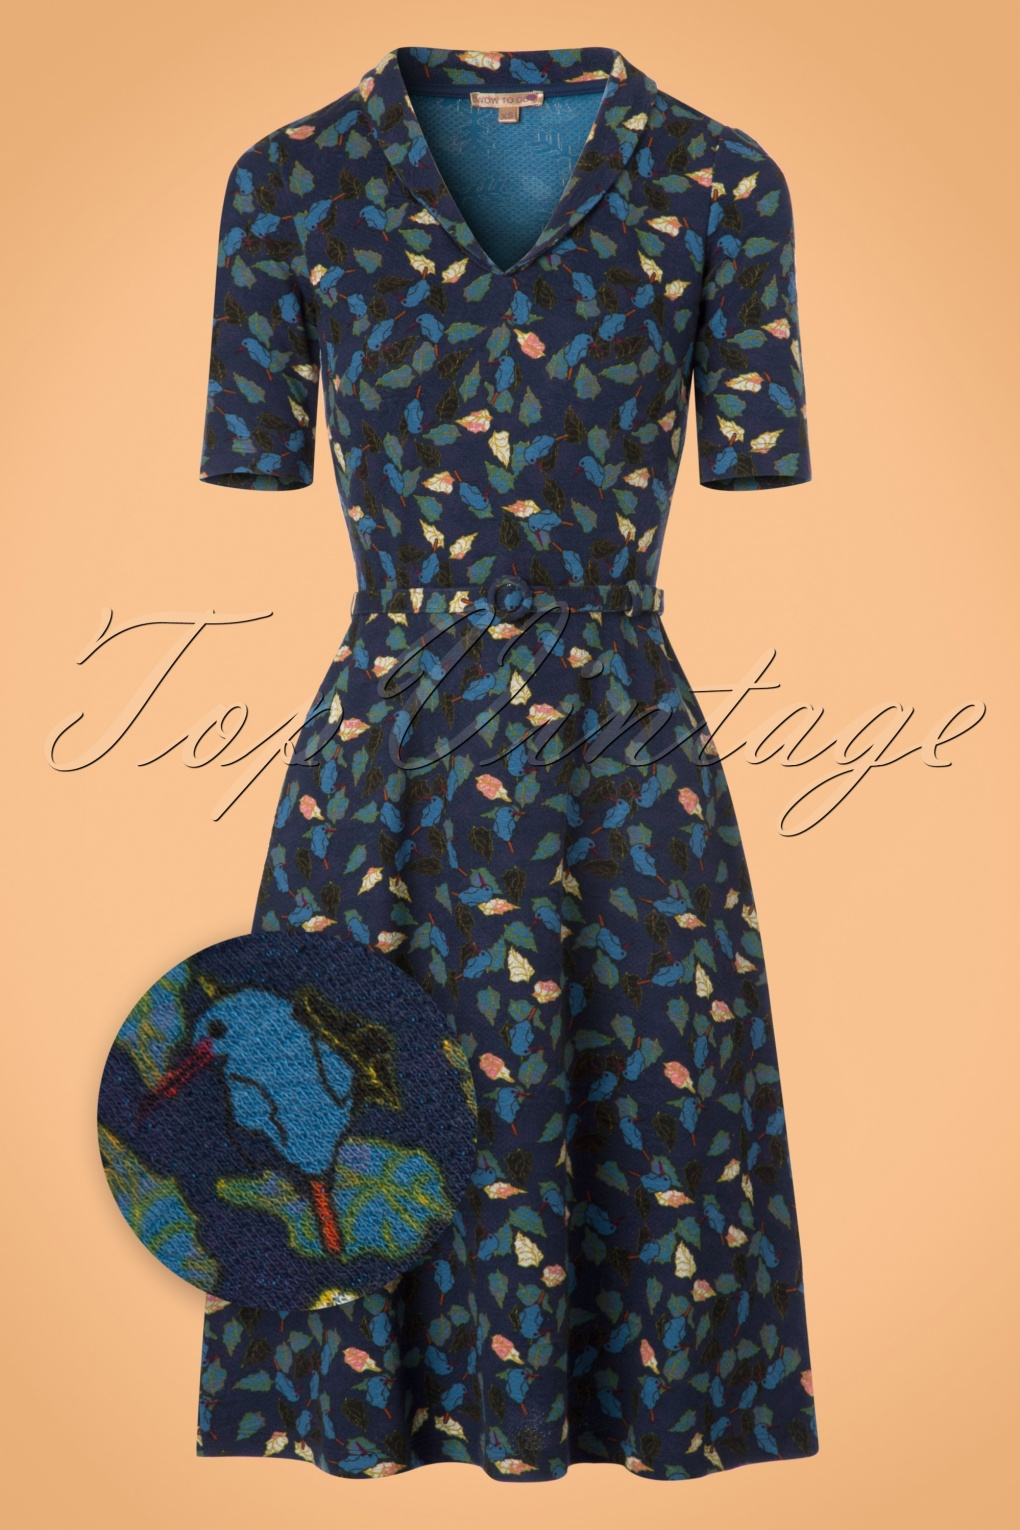 1960s – 70s Dresses- Retro Inspired Fashion 60s Cold Dress in Blue £88.94 AT vintagedancer.com